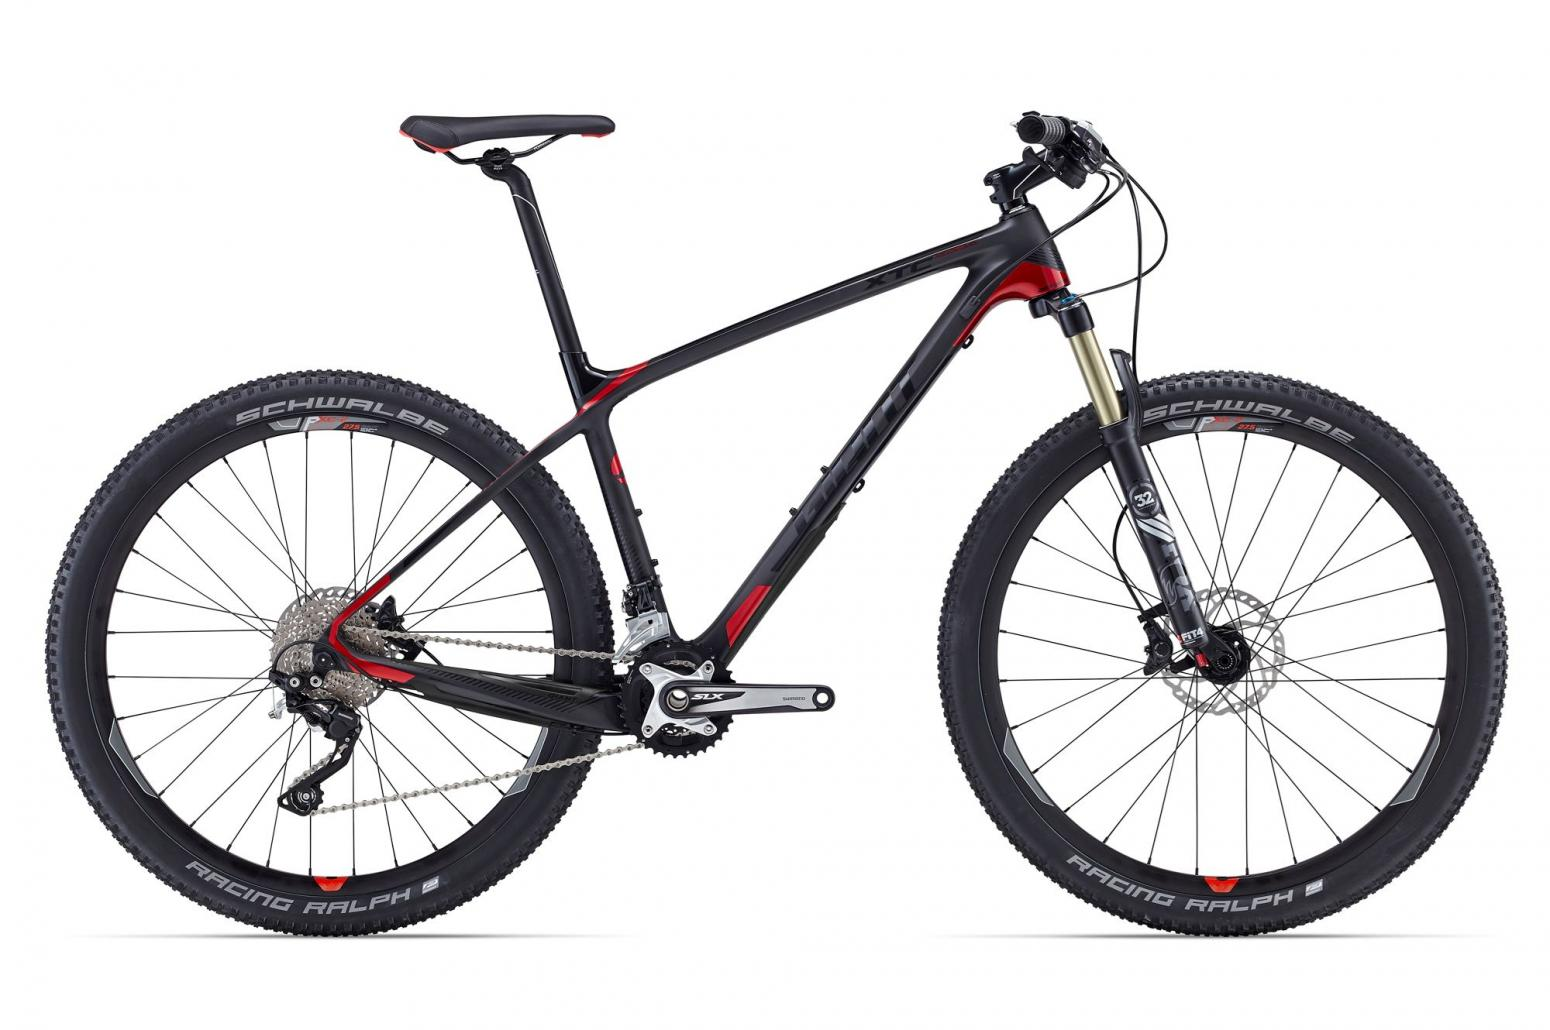 Giant MTB Trail/Race XtC Advanced 27.5 2 2016